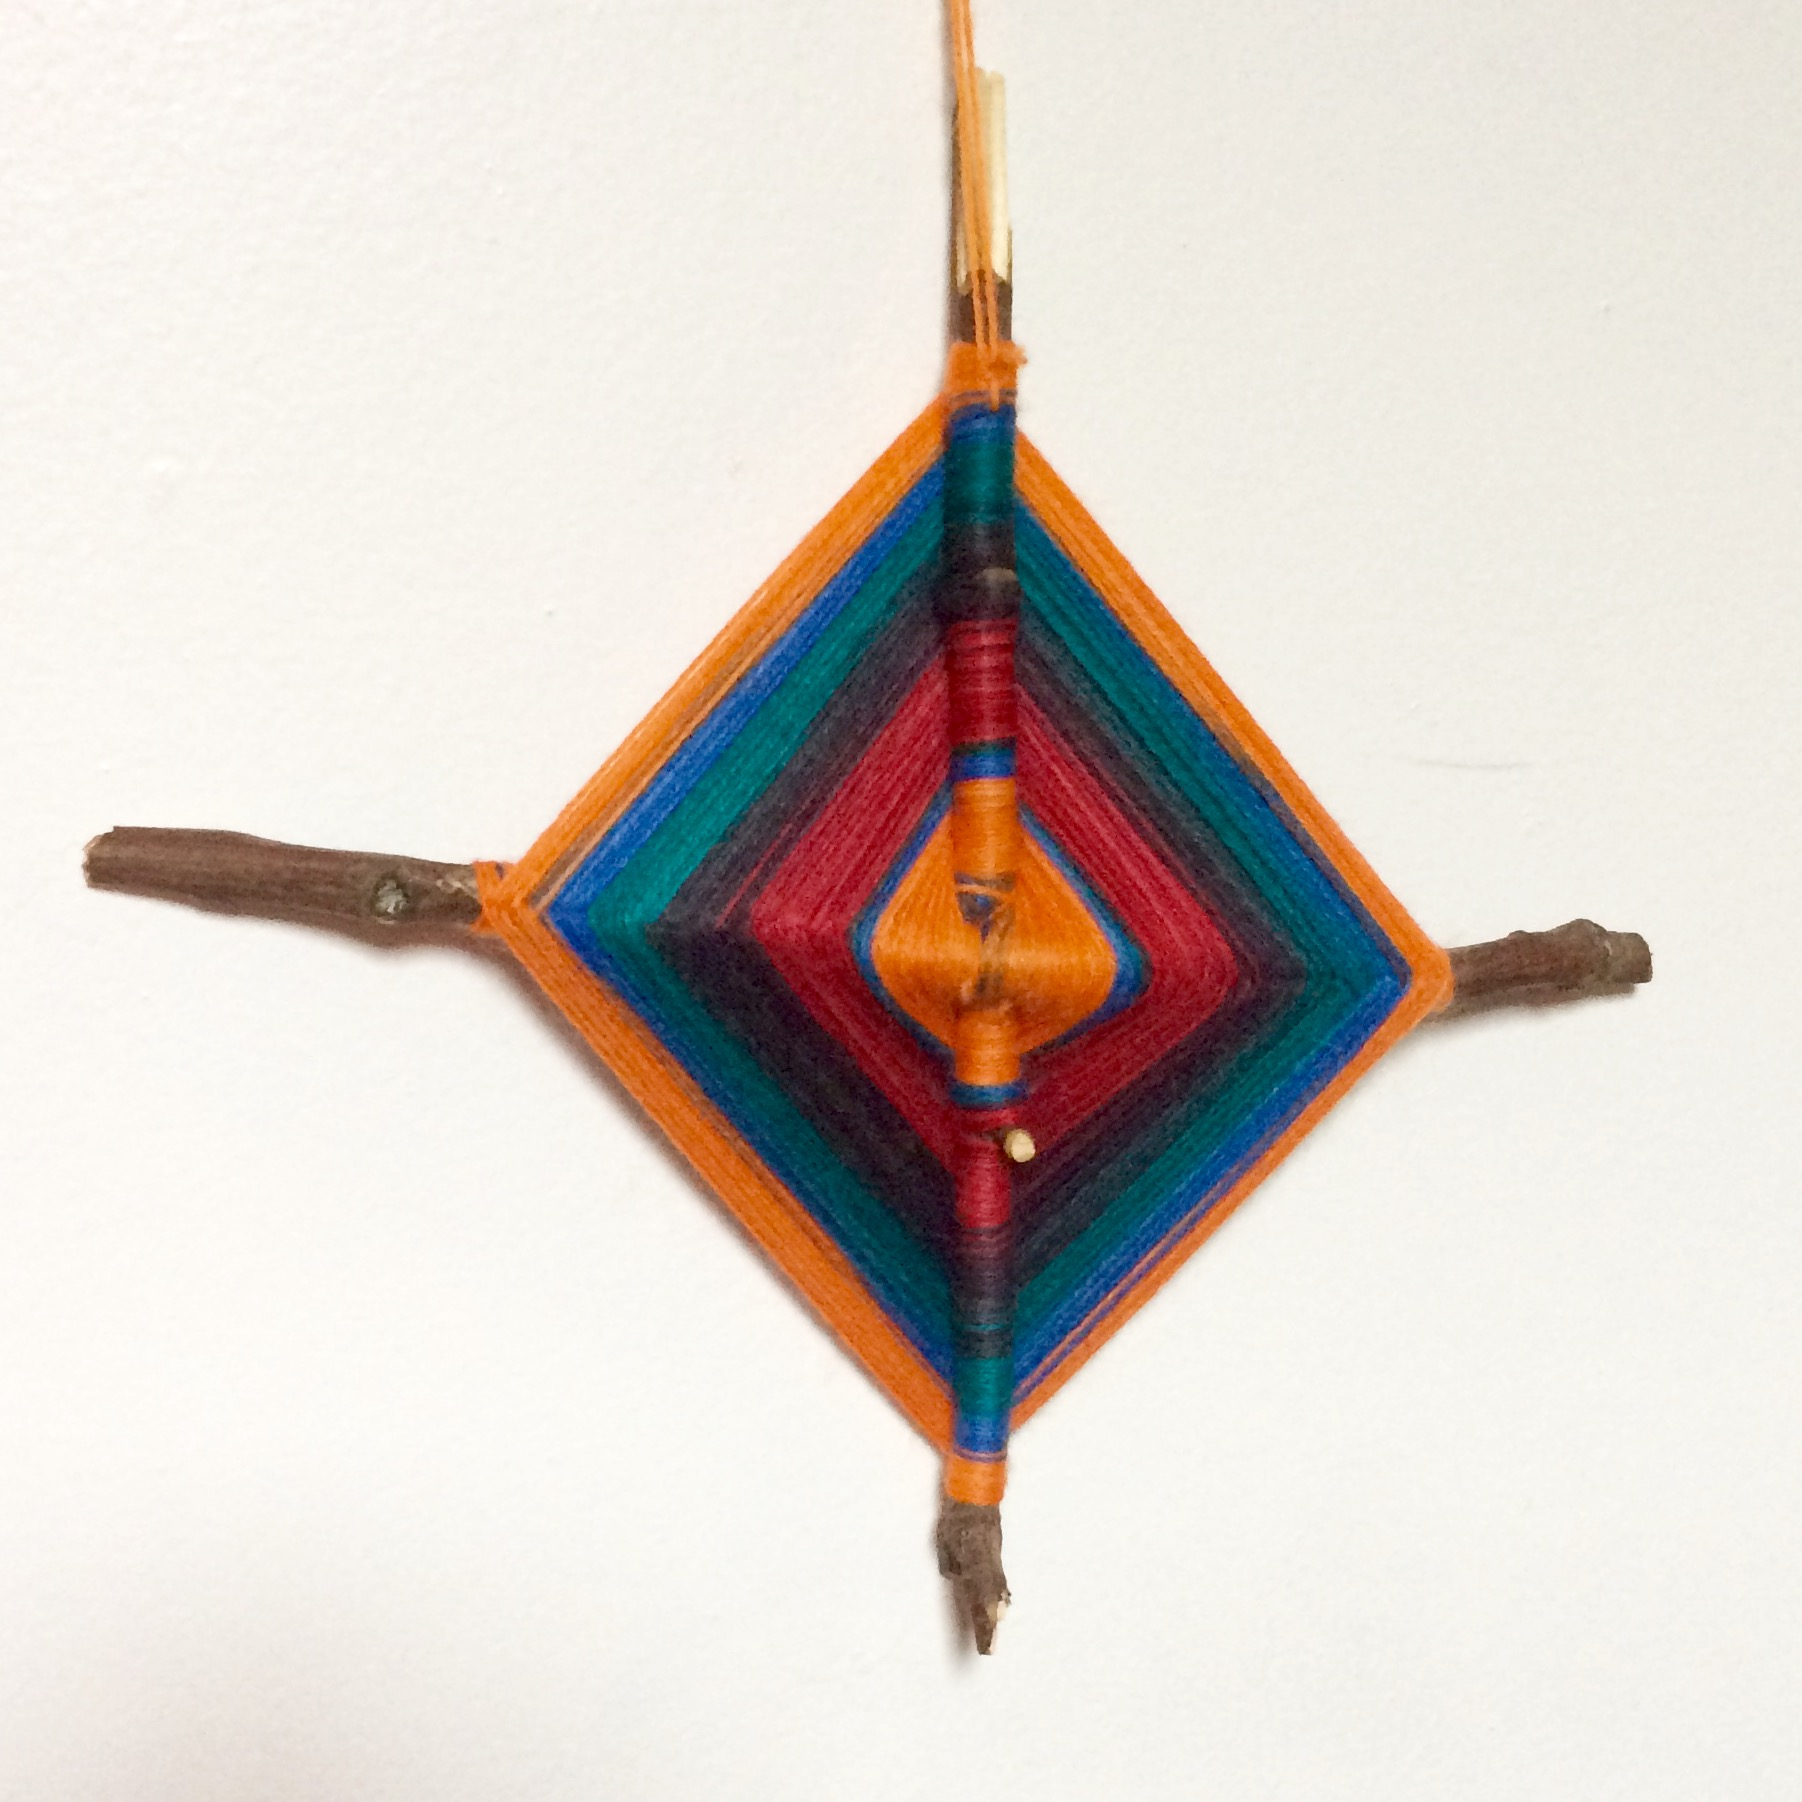 Because I study fiber art, my advisor made me this God's Eye as a graduation present. I don't know as much about the history of these objects as I wold like, but one fitting interpretation I found online indicates that they can be used to mark rites of passage.